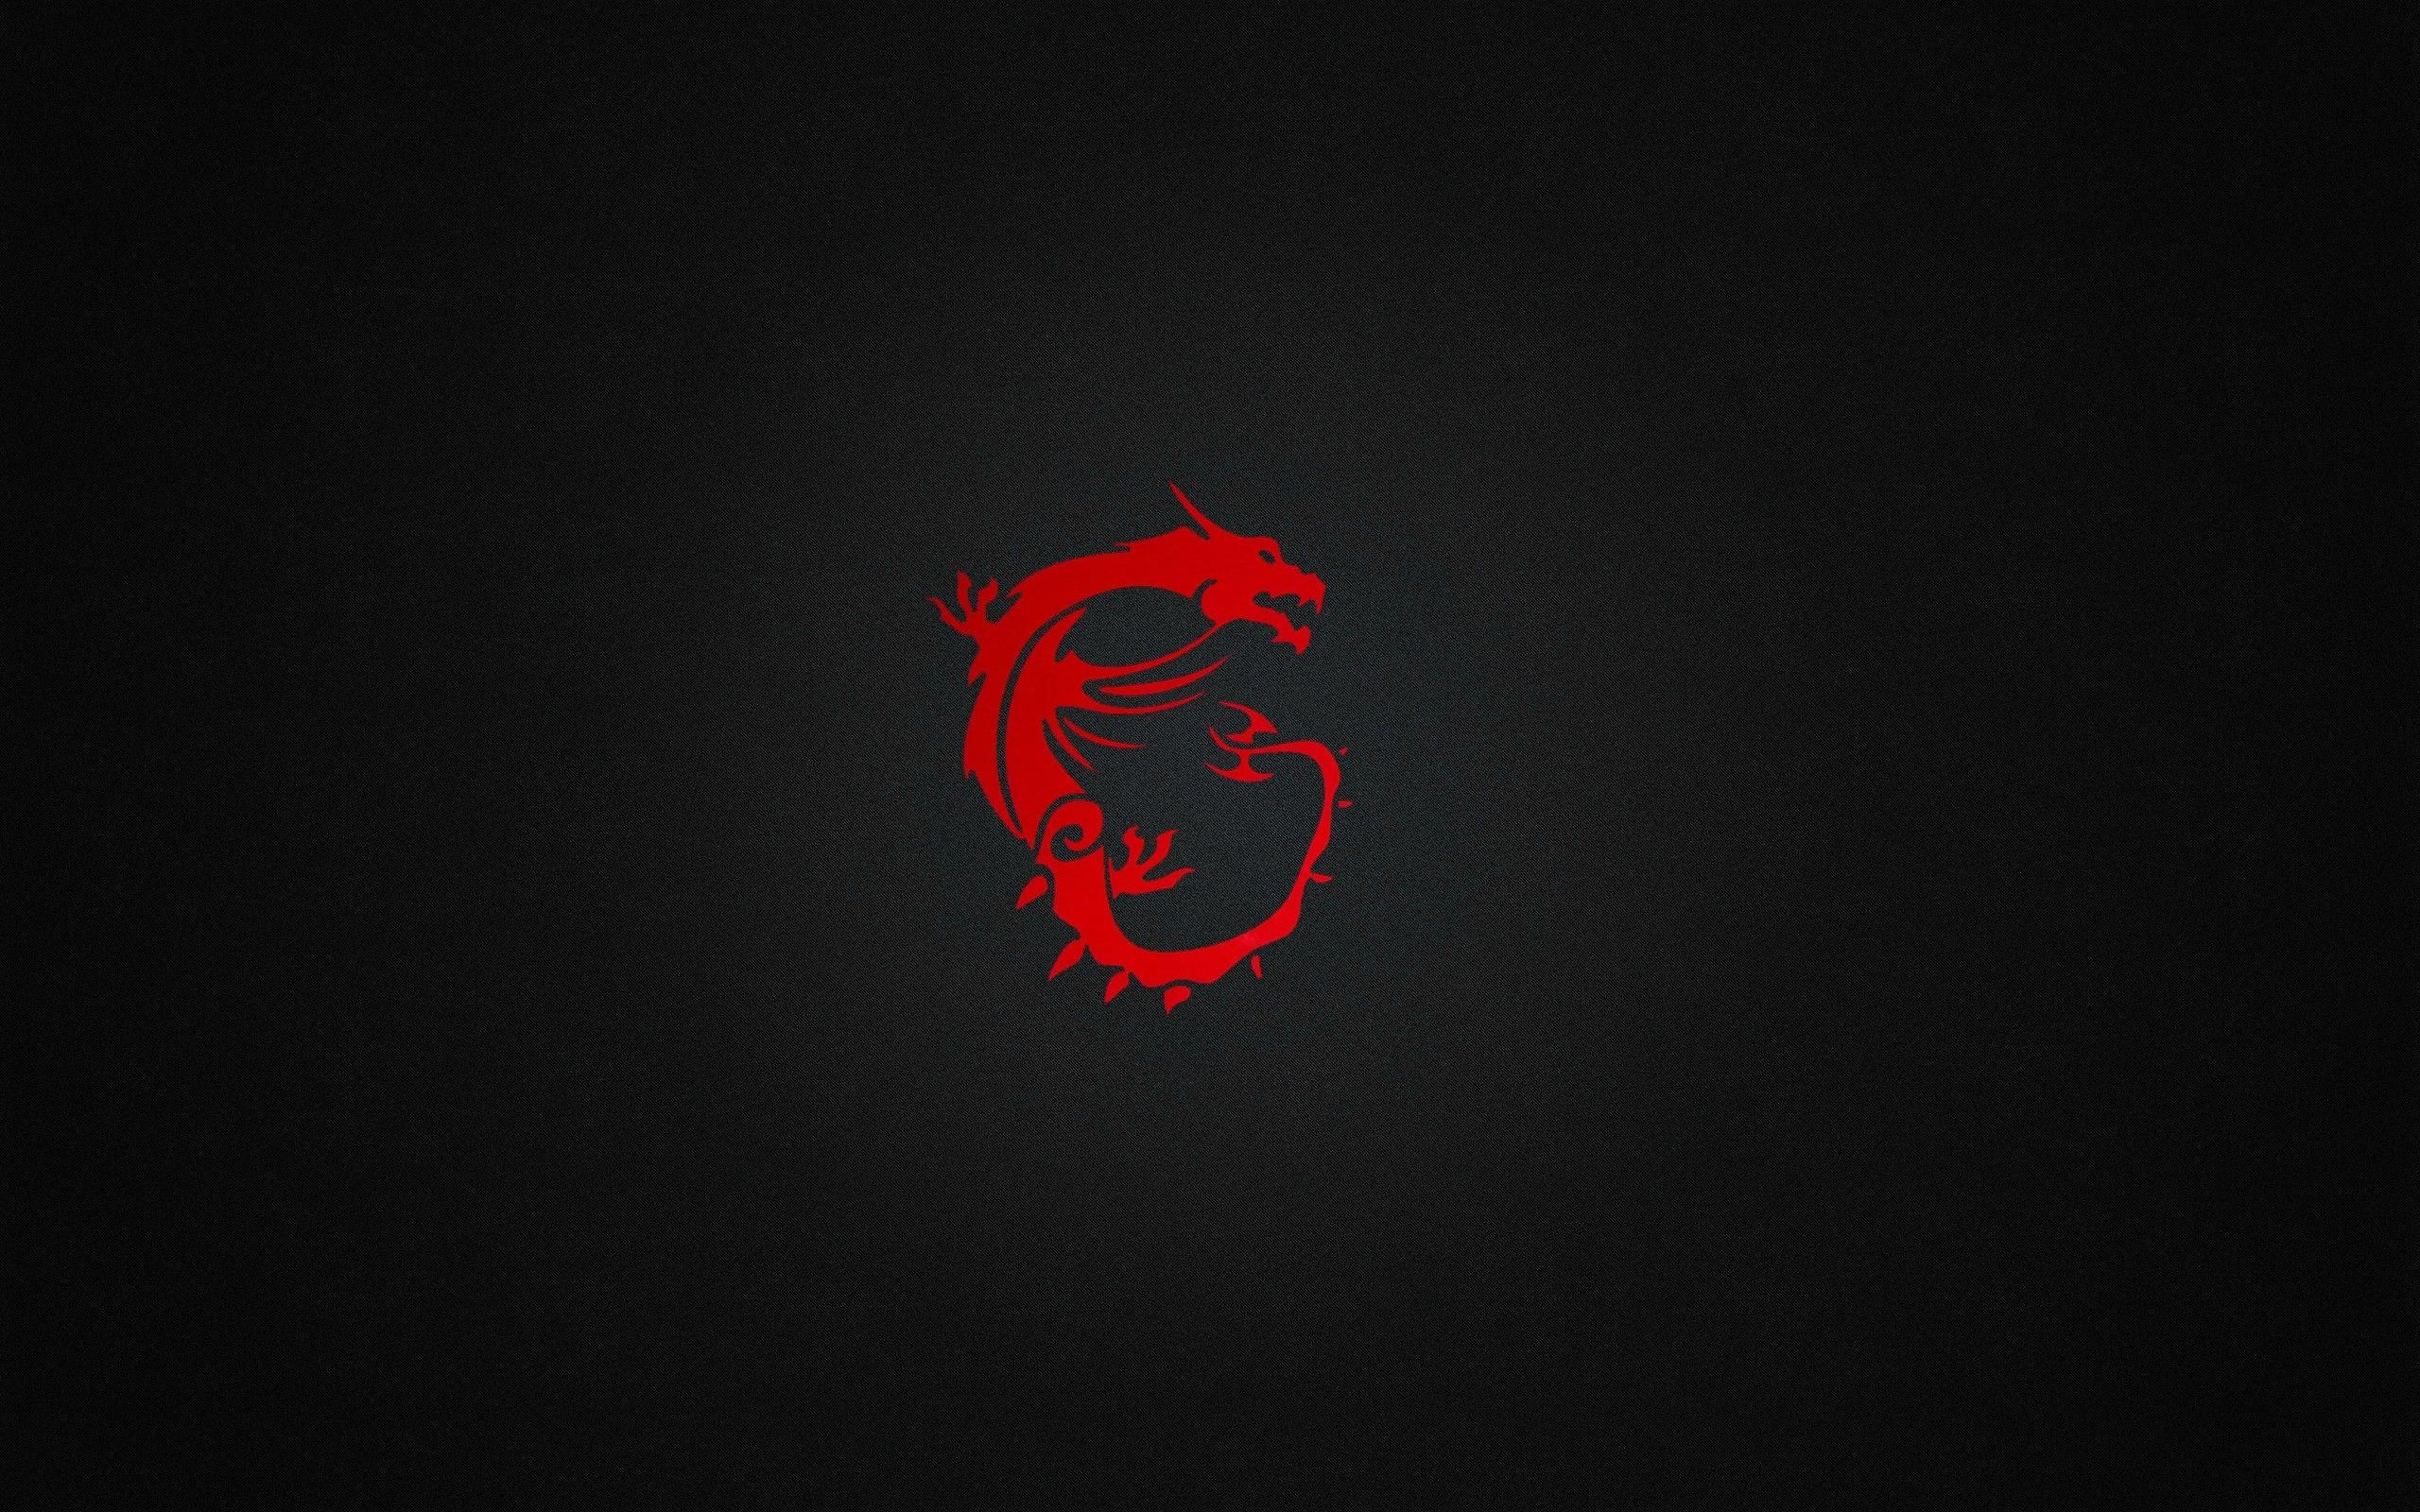 MSI Wallpaper 17